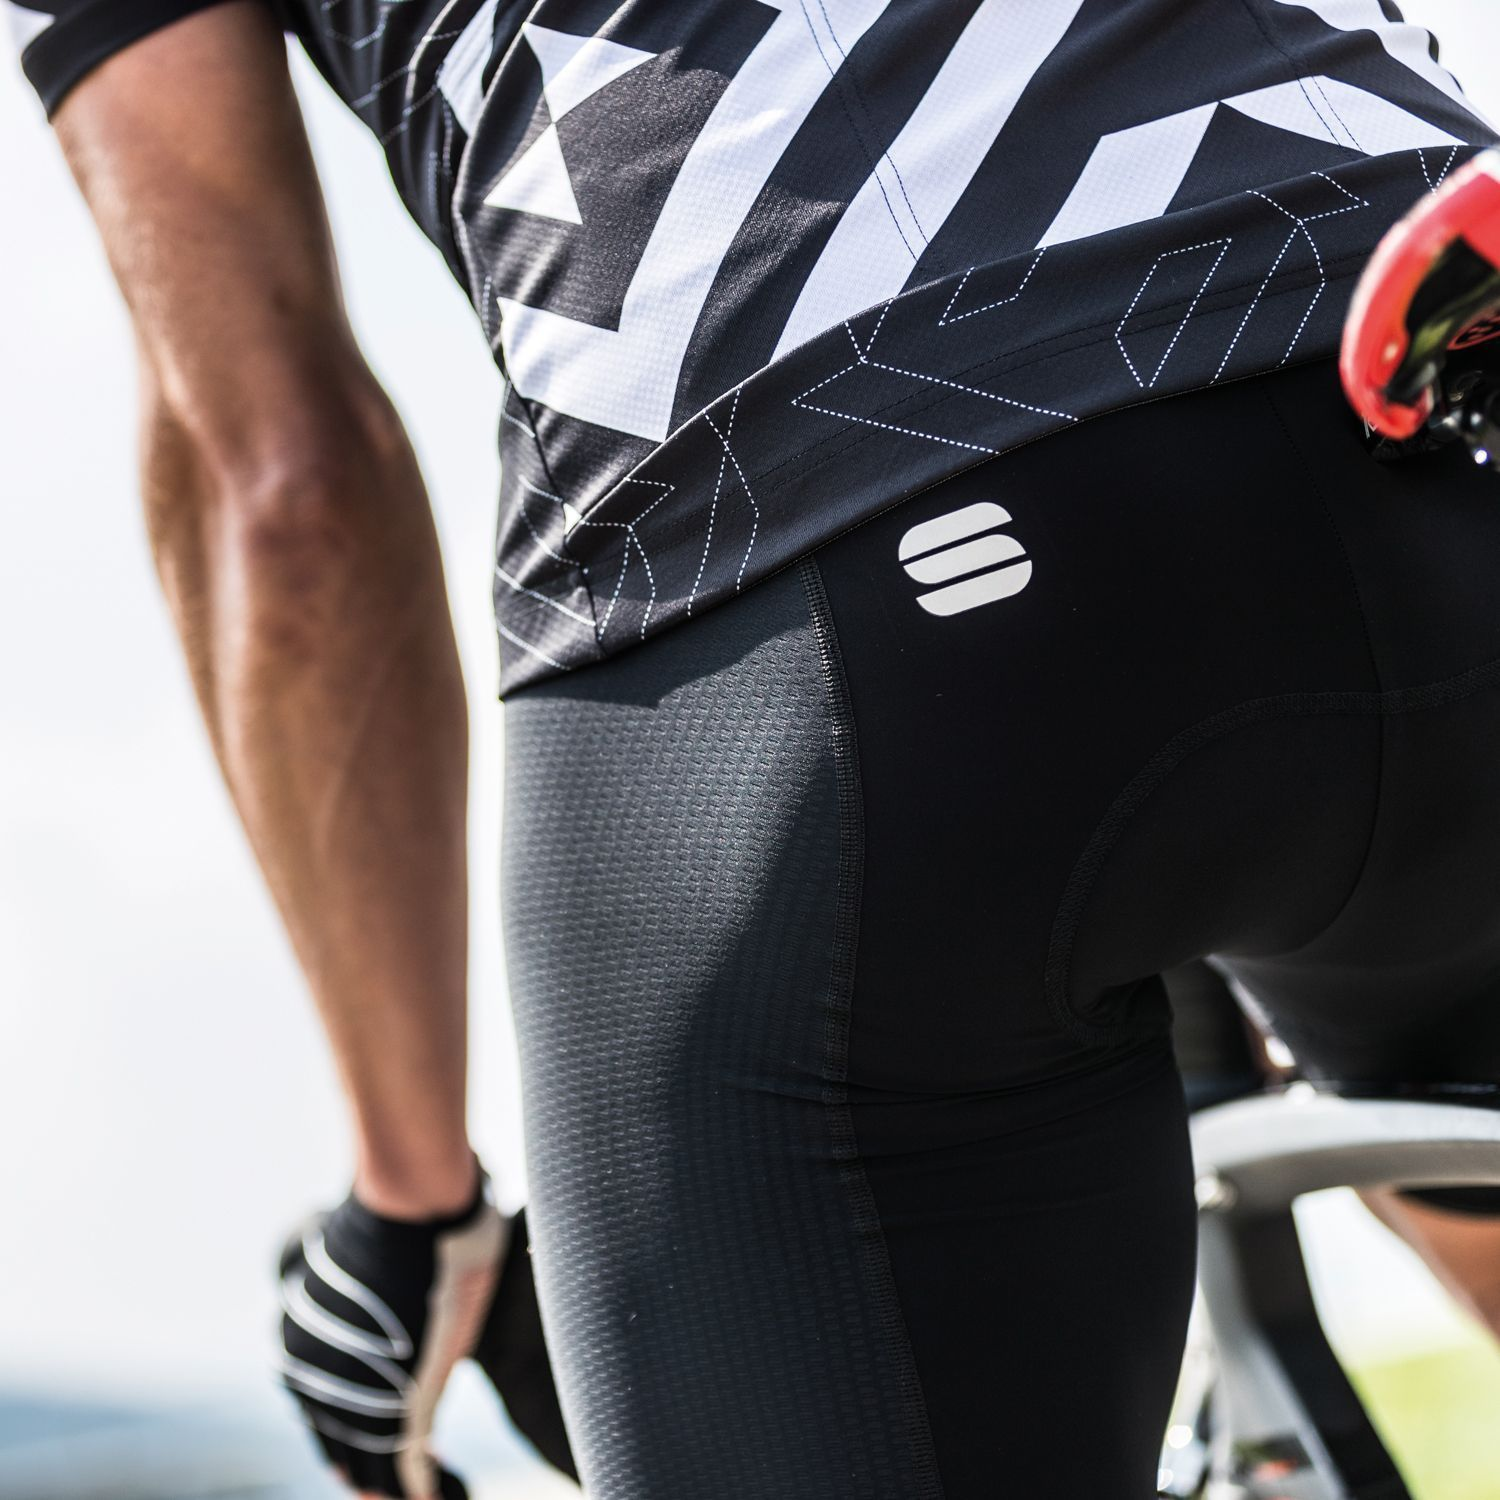 Previous. Sportful PRISM short sleeve cycling jersey black · Sportful PRISM  short sleeve cycling jersey black 5677ab1bb